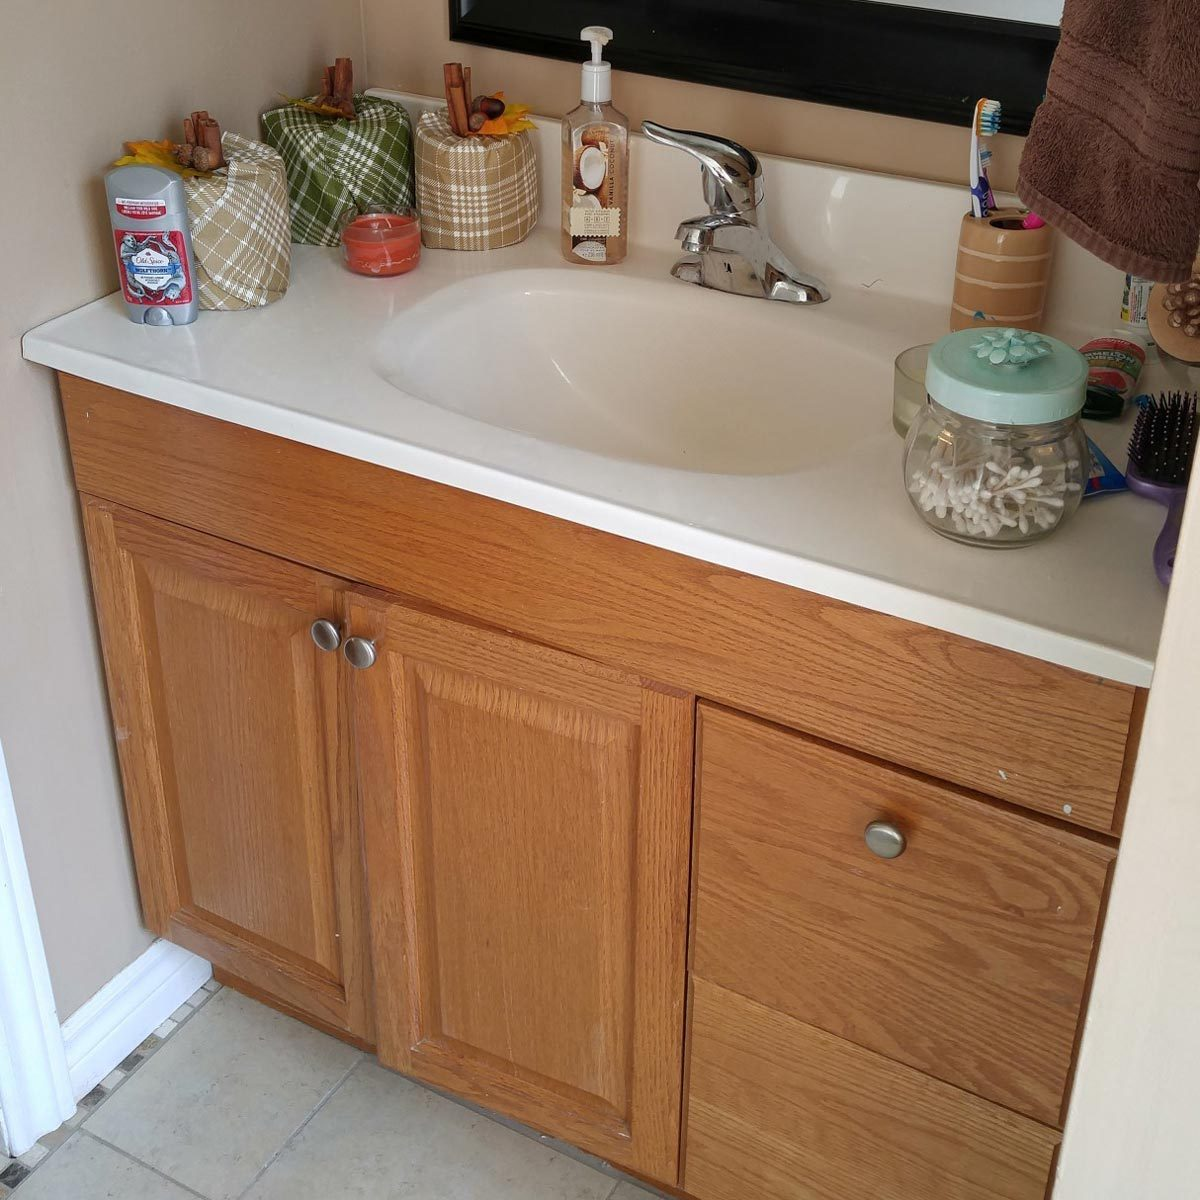 Bathroom Vanity Builder Basic Model